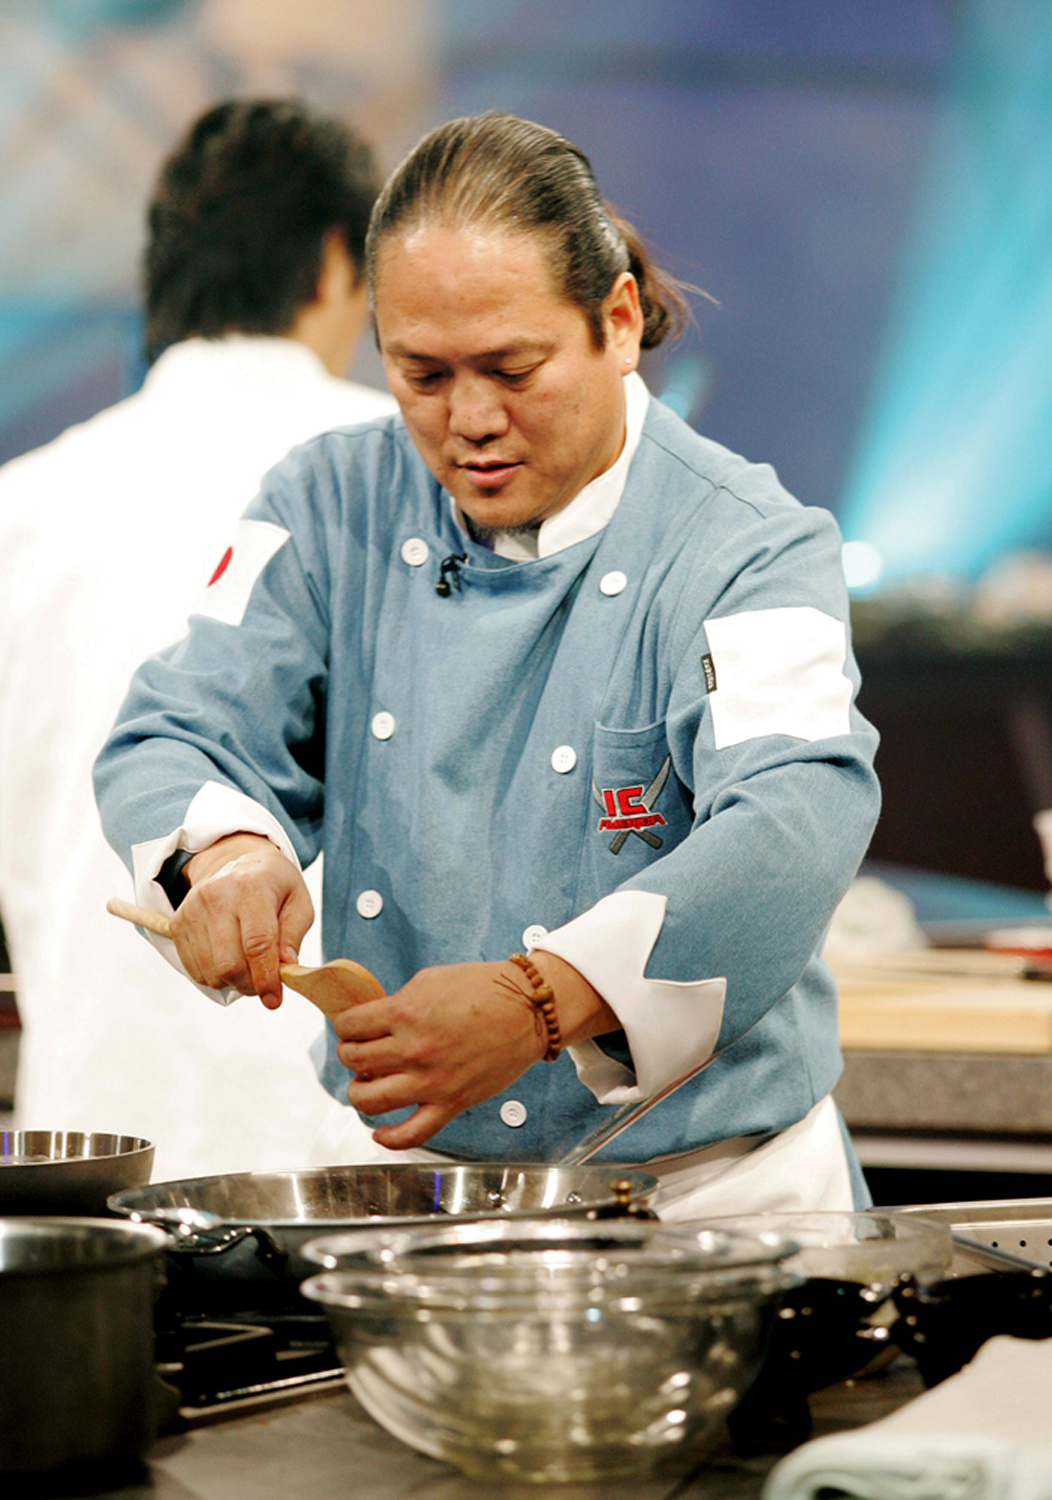 Celebrity chefs: An appetite for perfection